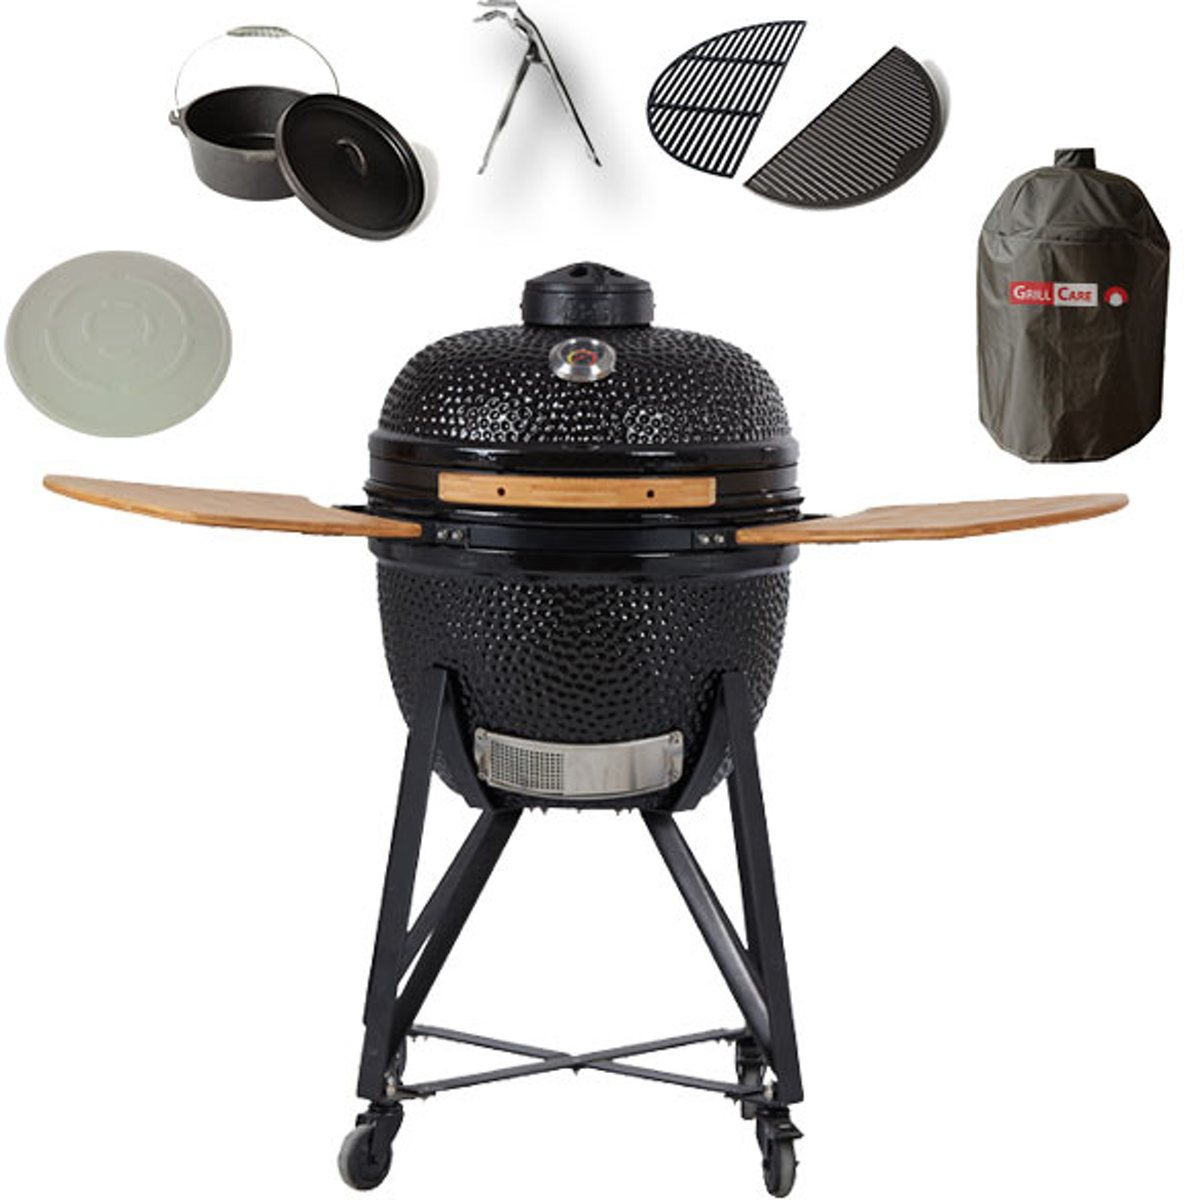 Grill Care XXL Deluxe (21 inch Kamado)